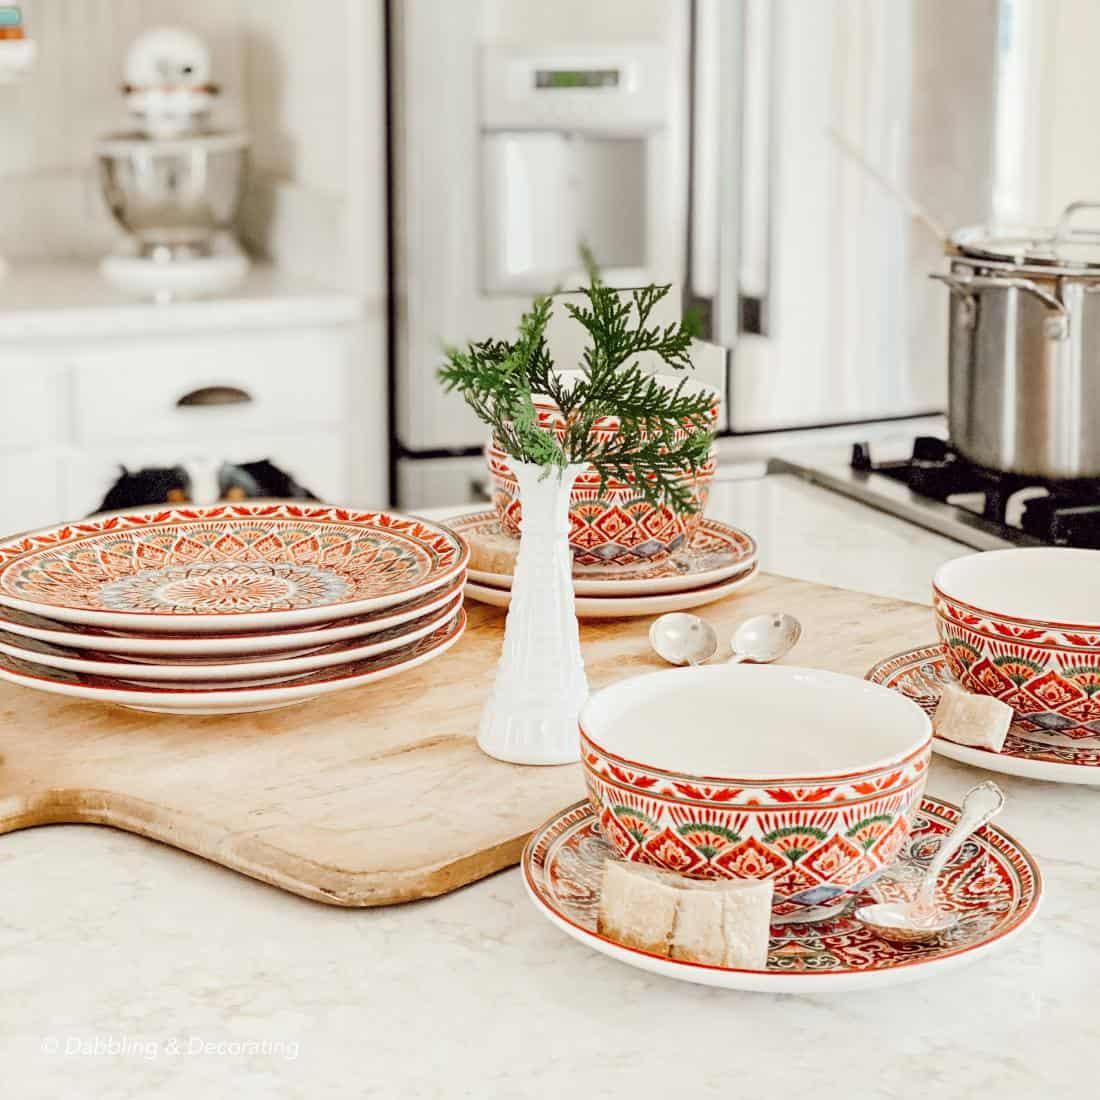 red dishes on a kitchen counter